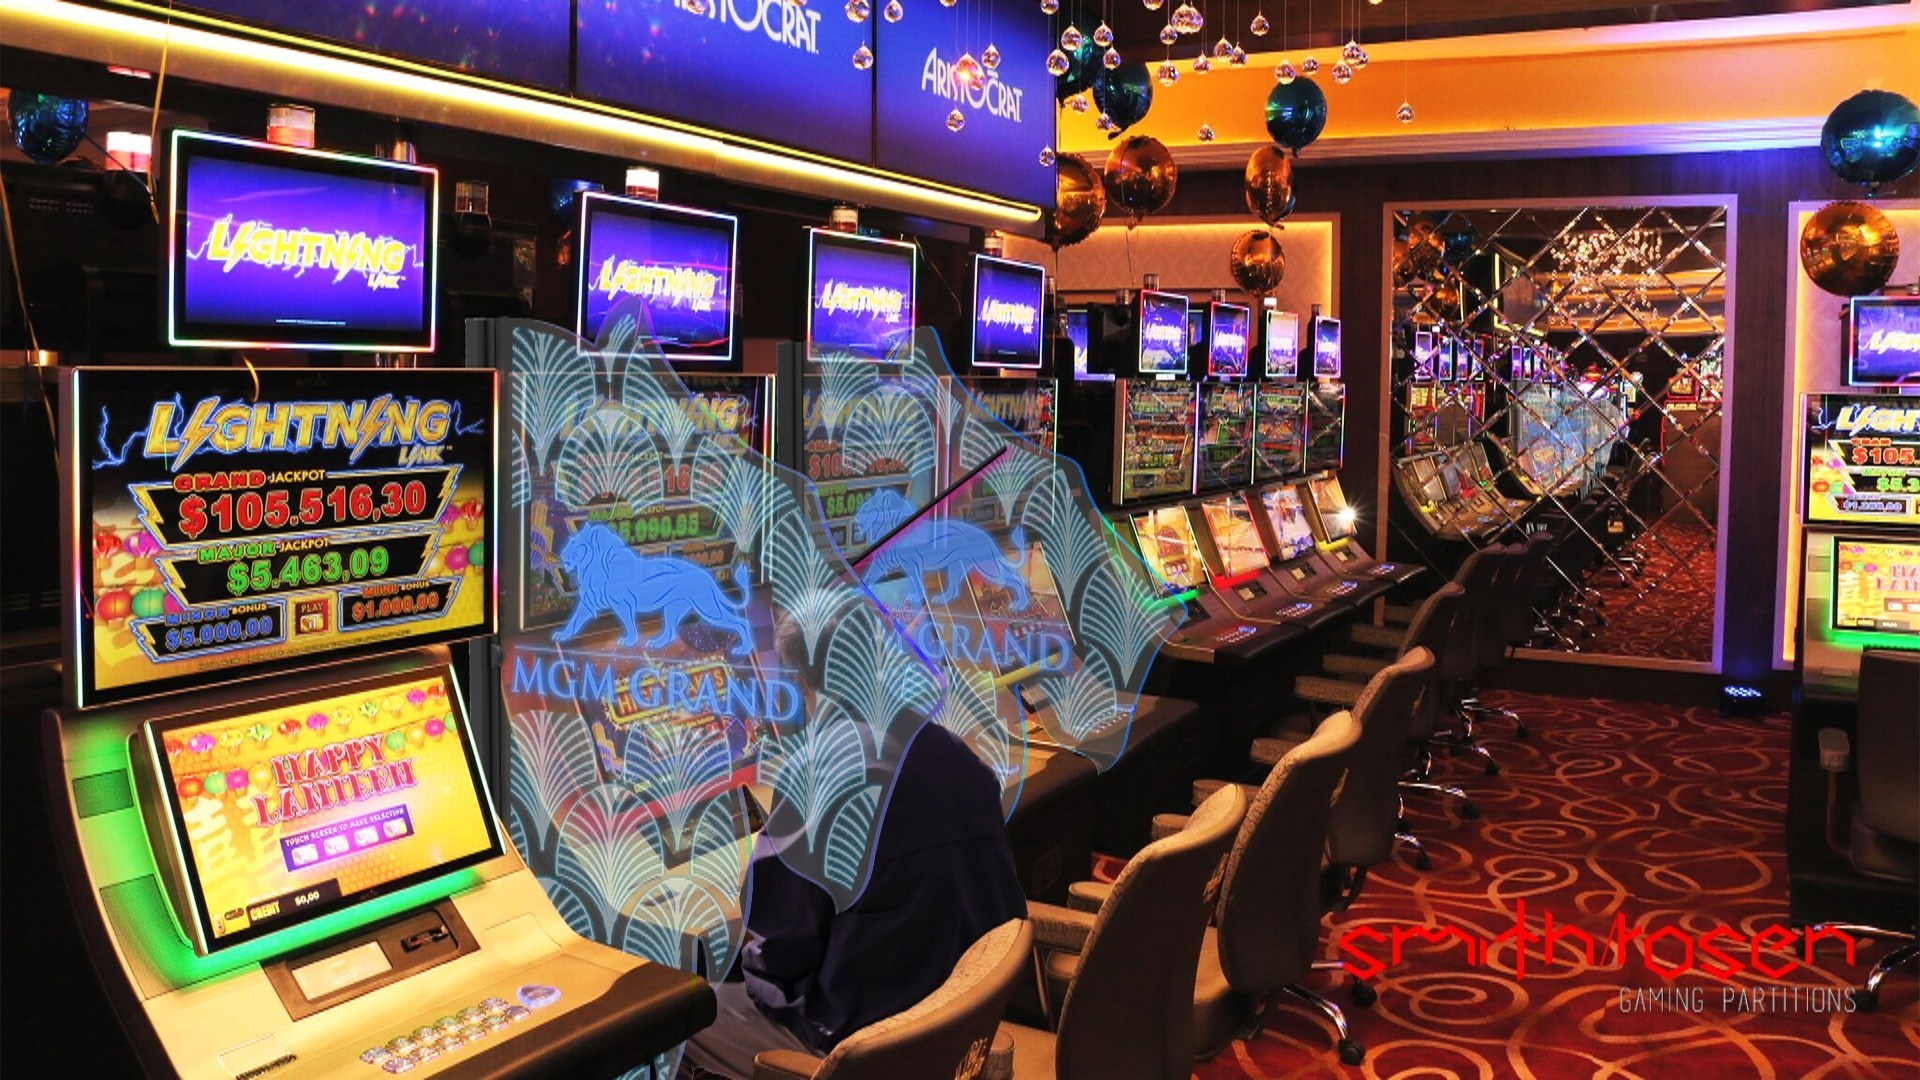 Smith Rosen Gaming Partitions Introduces UVC Powered Technology to Help Casinos Fight the Spread of COVID-19